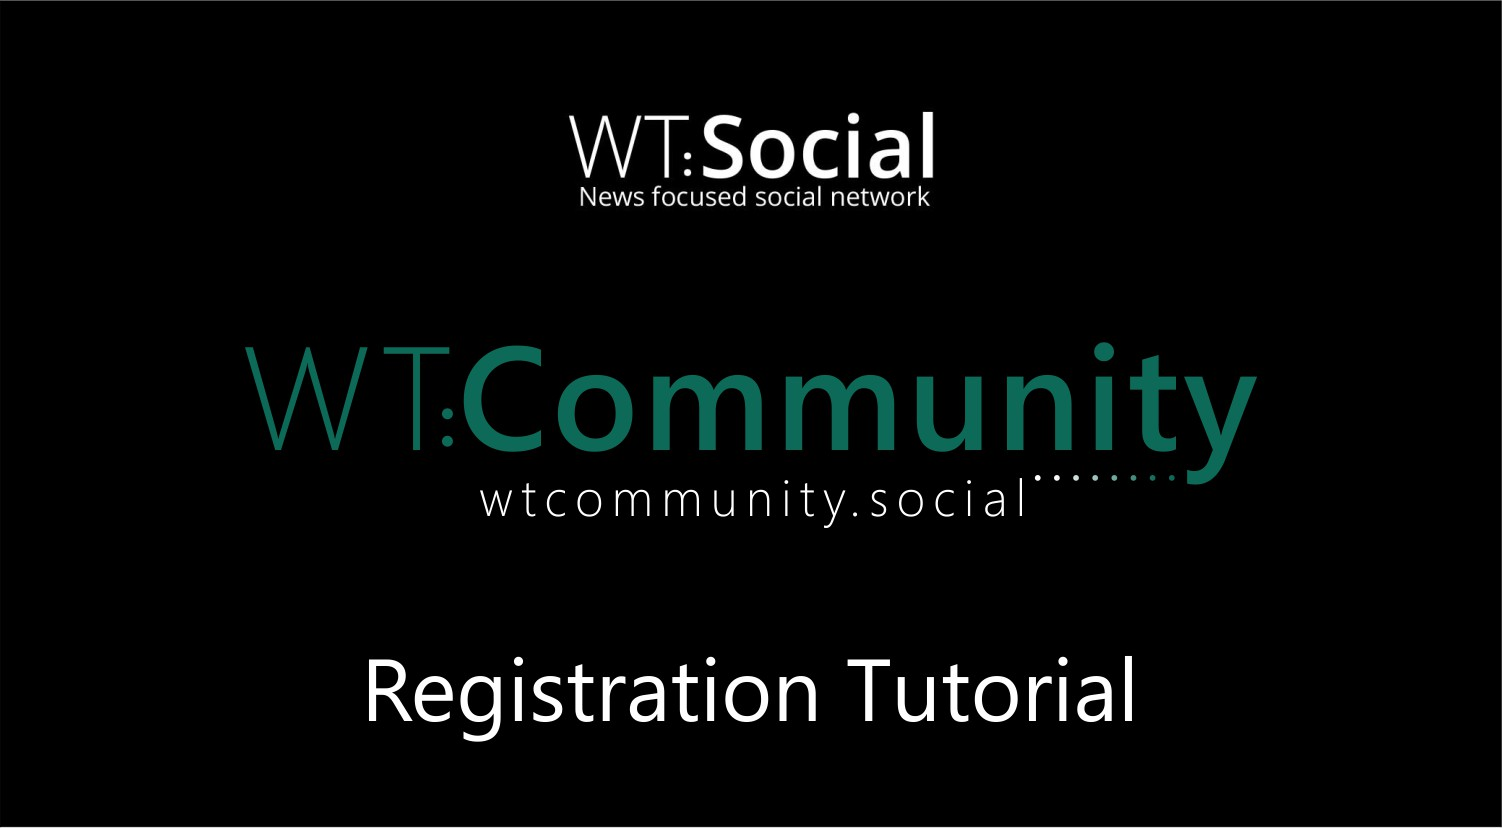 WT.Social Registration Tutorial Video